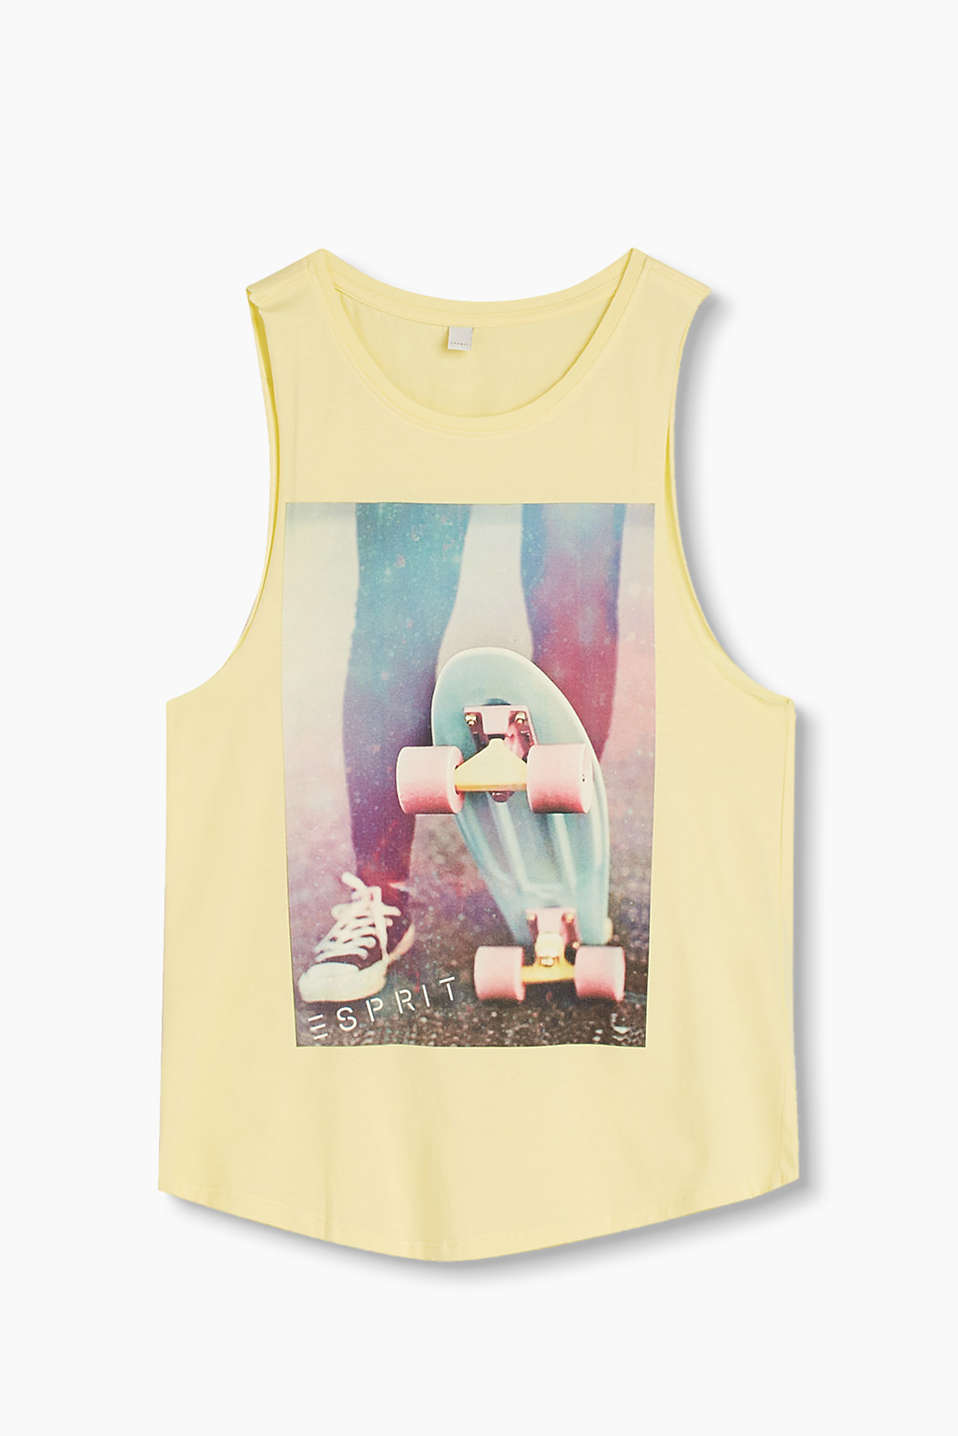 Cool vest with a tone-in-tone photo print, in 100% cotton